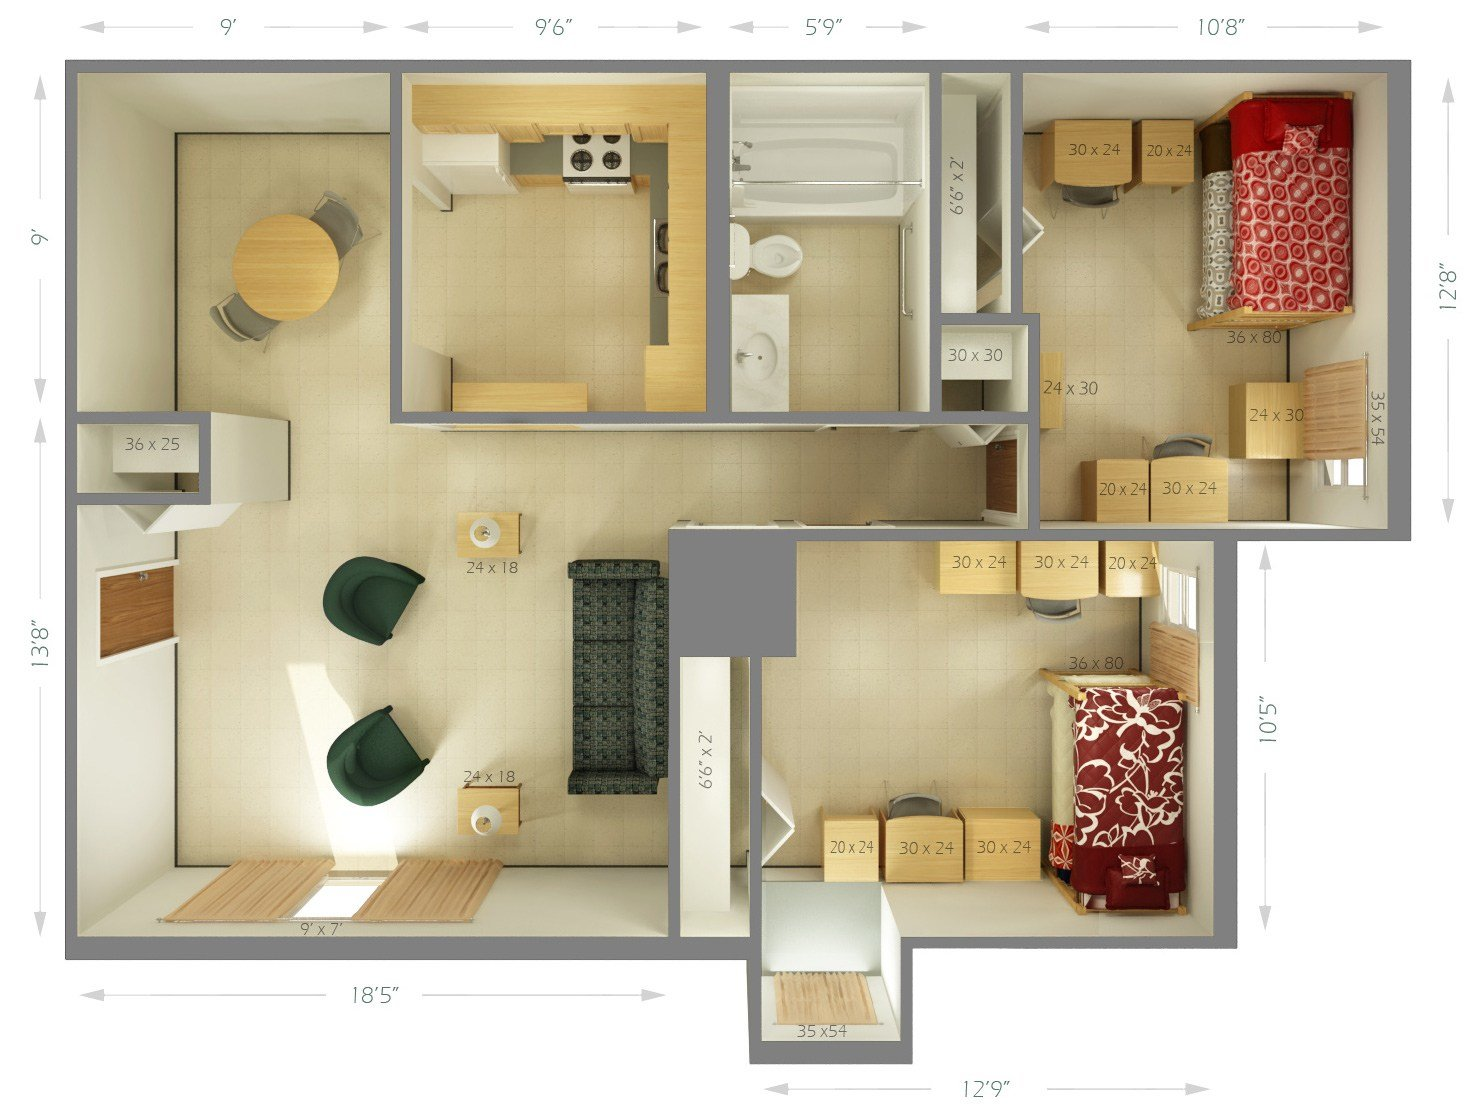 Best University Housing Cougar Village Room Dimensions Siue With Pictures